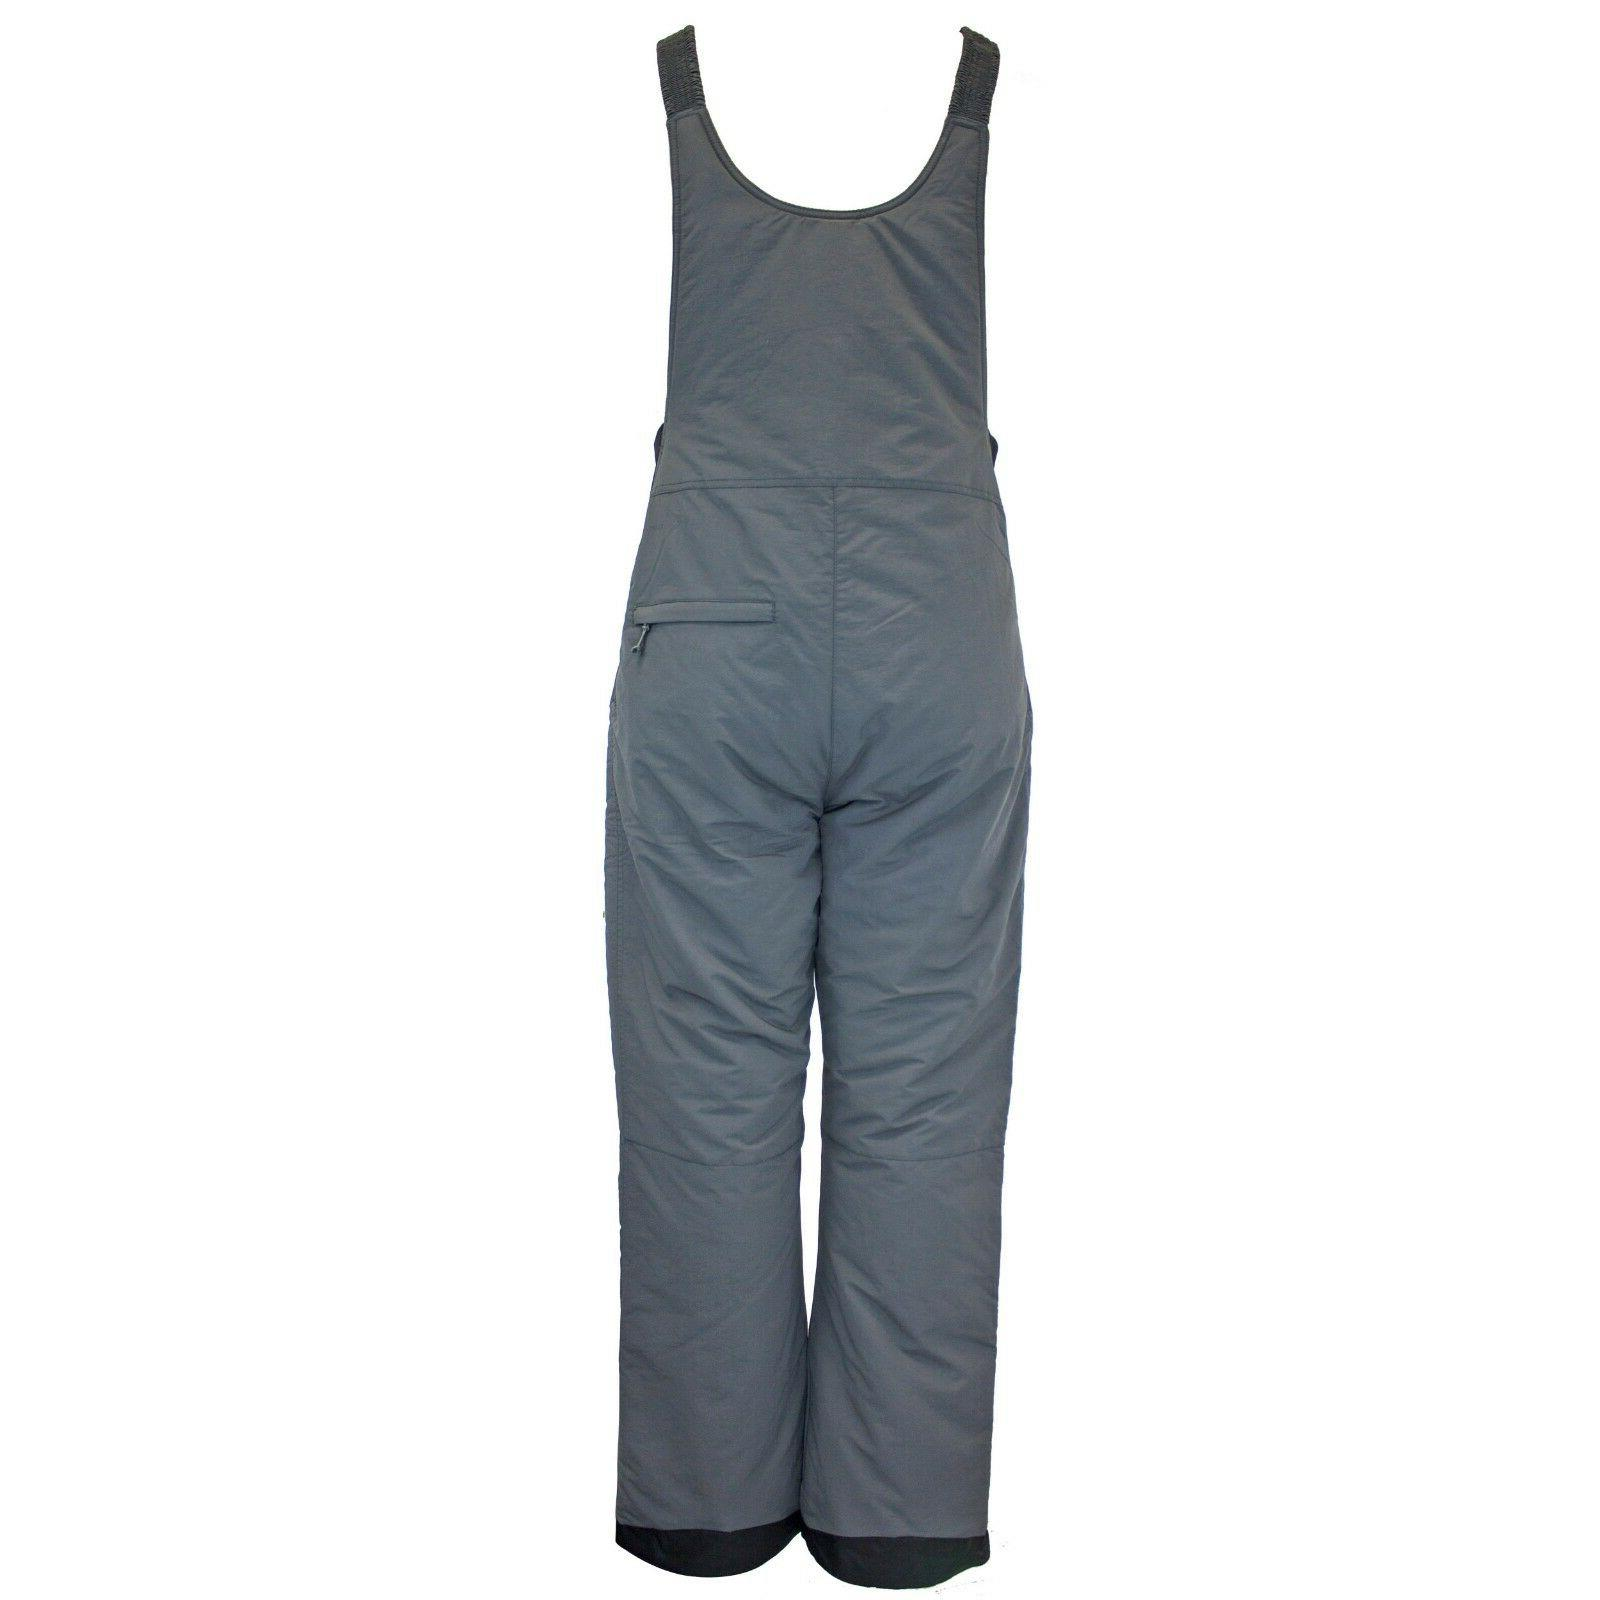 White Sierra Insulated Snow Pants Bib - 2XL